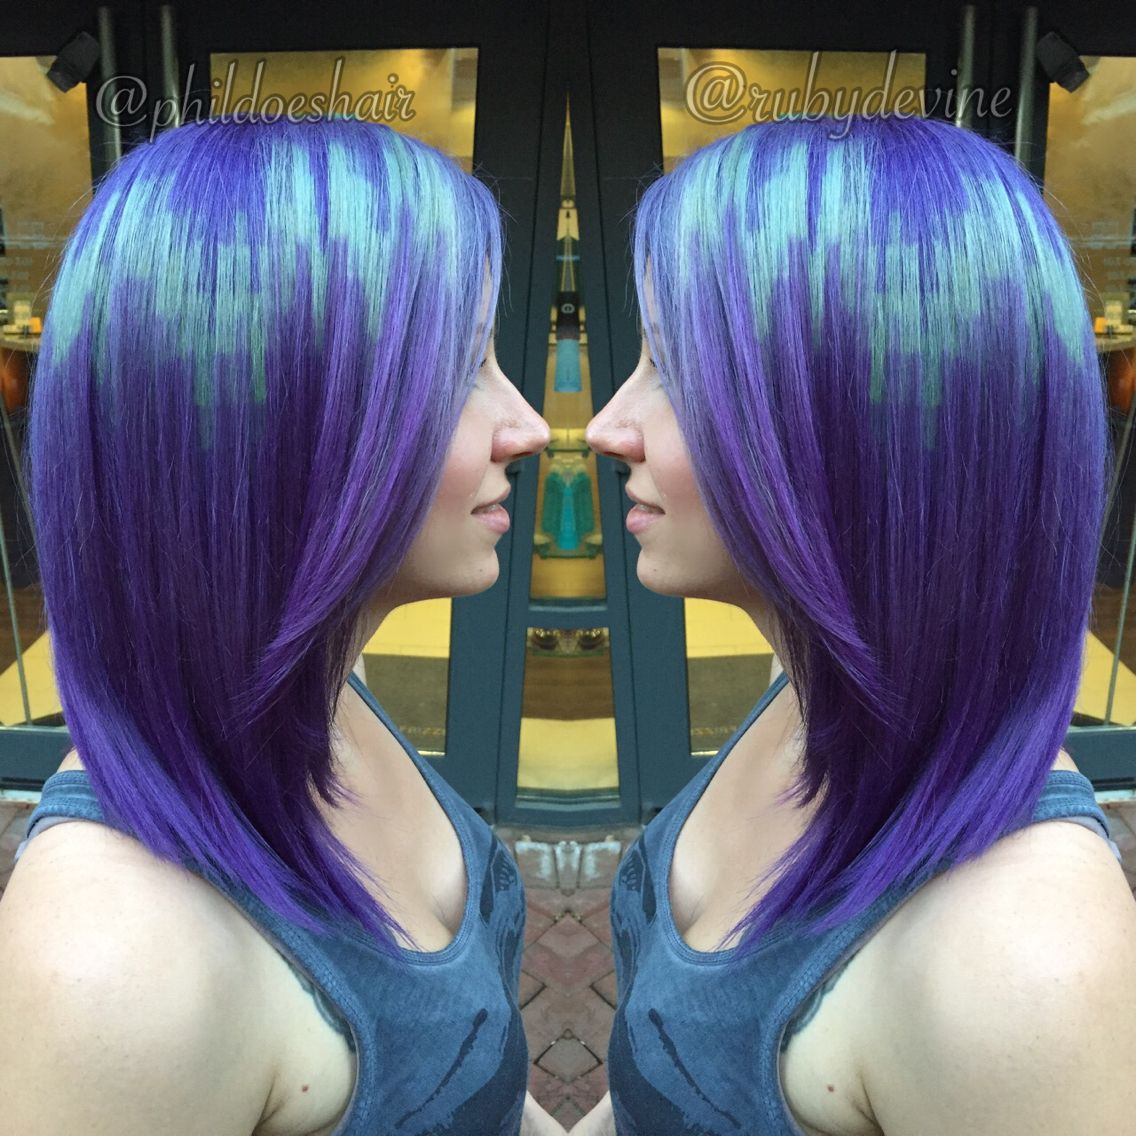 It's just a photo of Insane Pixel Hair Coloring